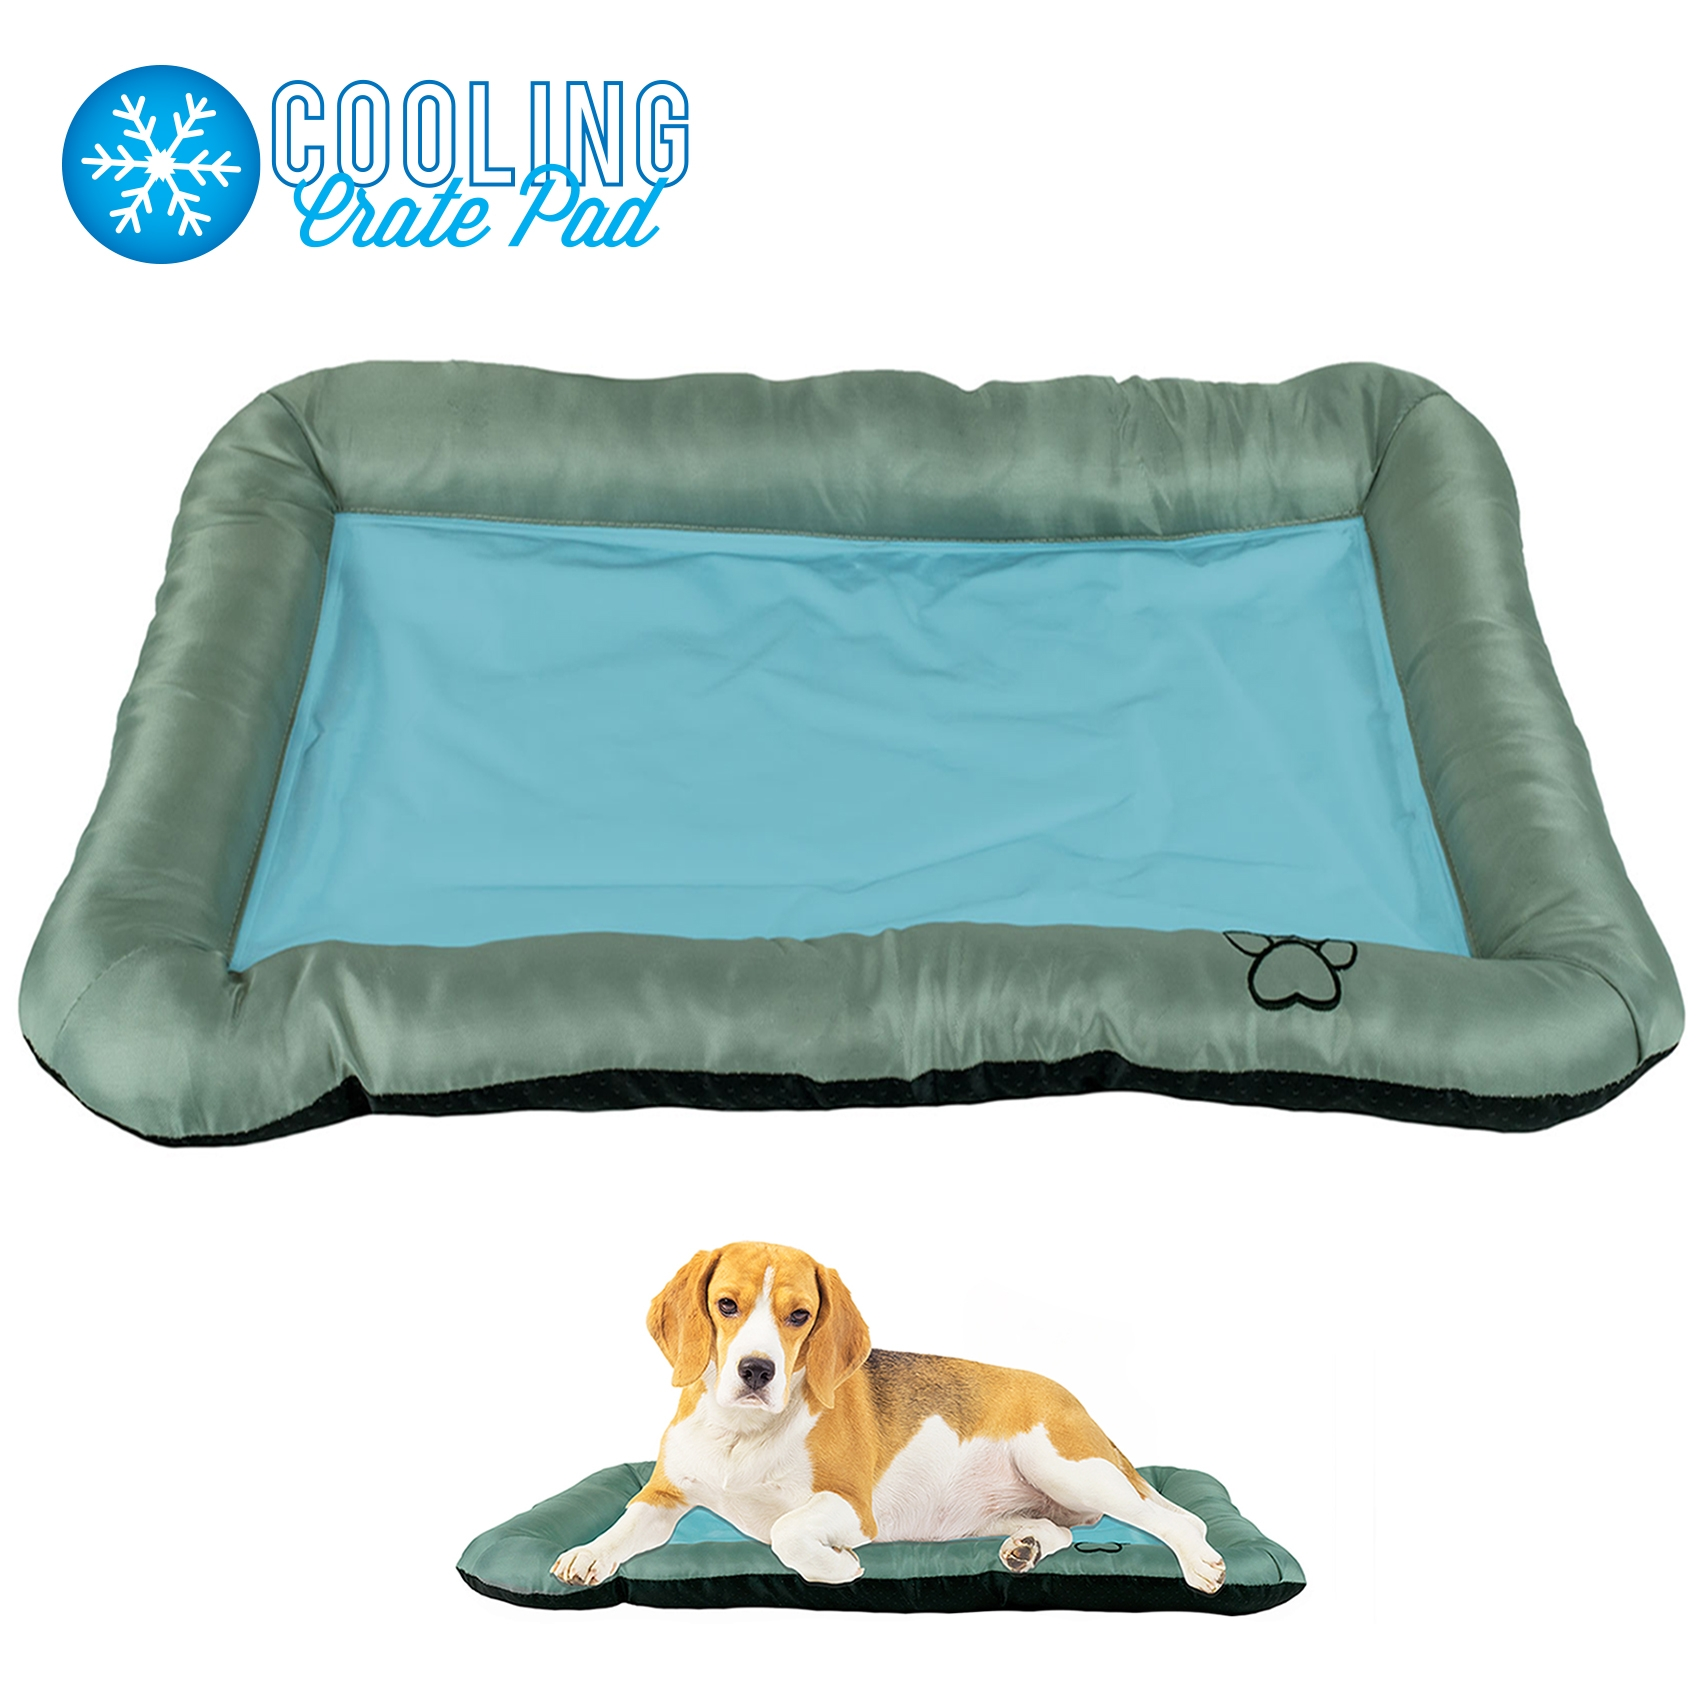 "Pet Dog Self Cooling Crate Kennel Cage Cushion Pad Gel Bed Mat, 30"" x 21"" Light Blue and Gray"